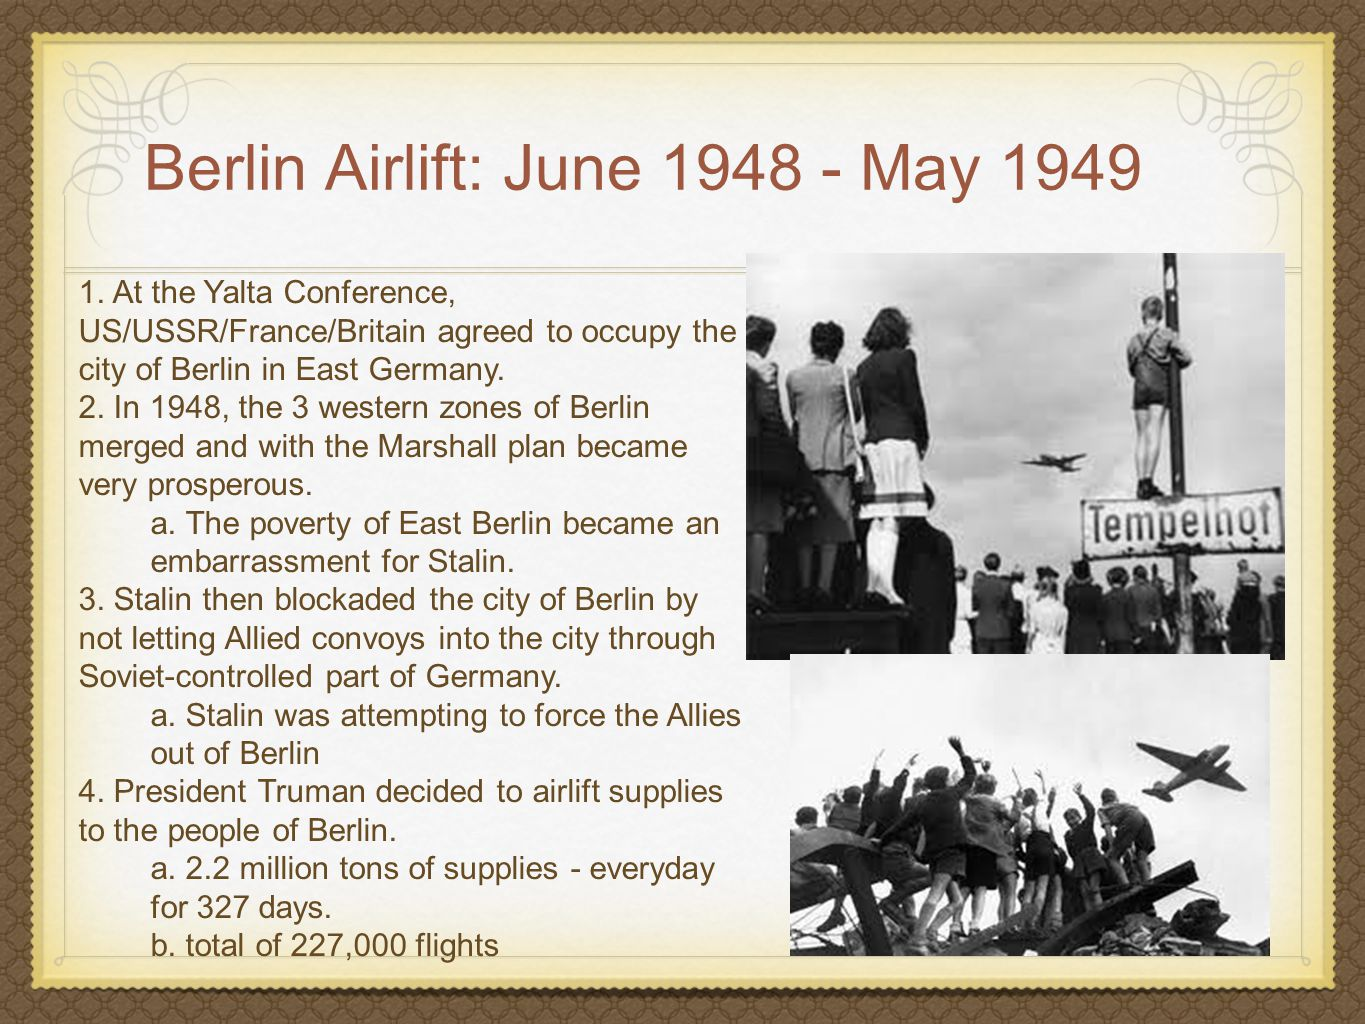 Berlin Airlift: June 1948 - May 1949 1. At the Yalta Conference, US/USSR/France/Britain agreed to occupy the city of Berlin in East Germany. 2. In 194